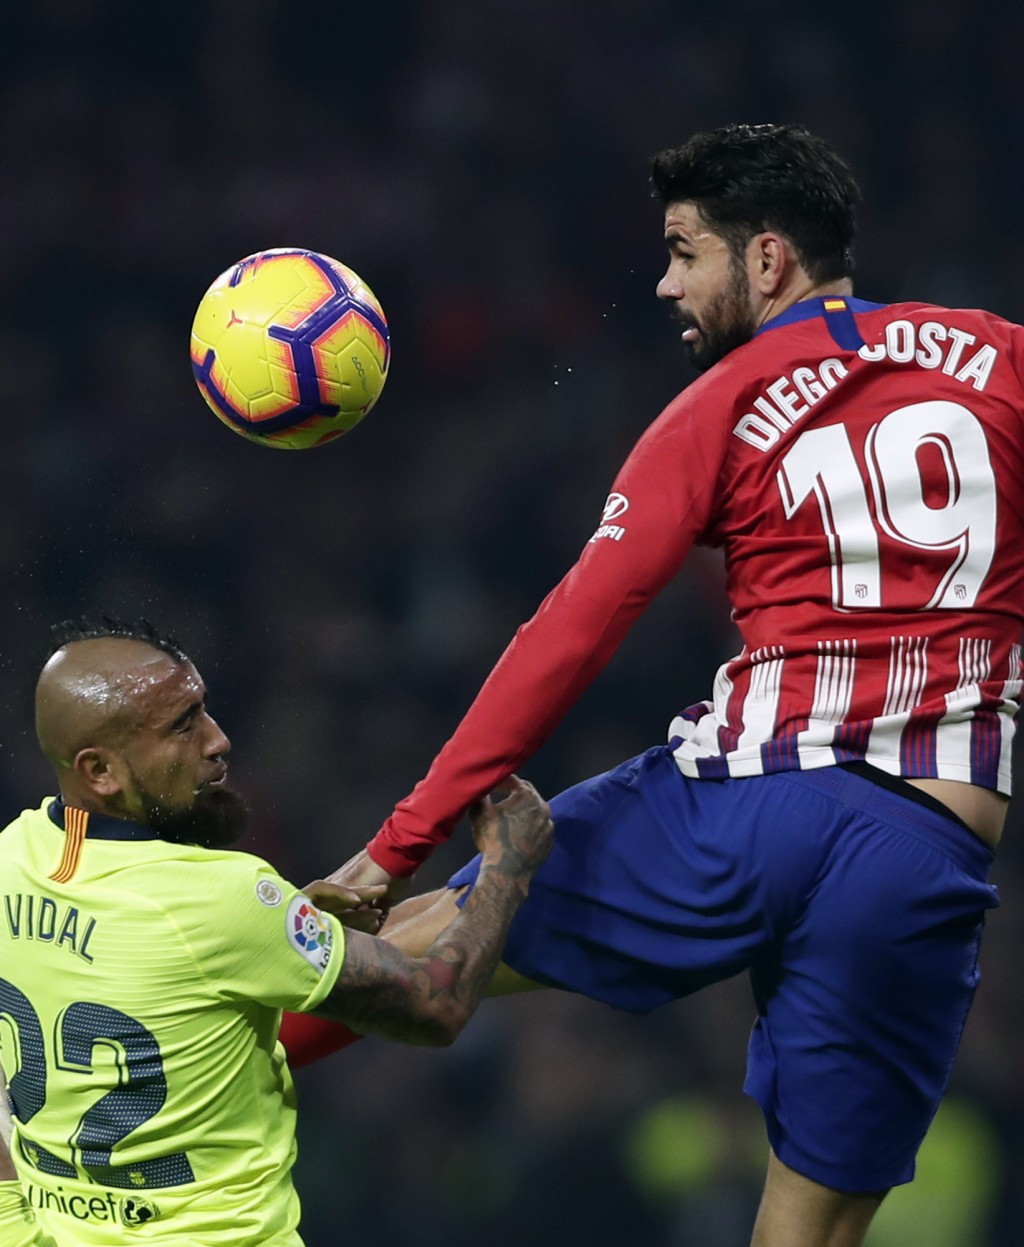 Barcelona's Arturo Vidal, left, duels for the ball with Athletico Madrid's Diego Costa during a Spanish La Liga soccer match between Atletico Madrid a